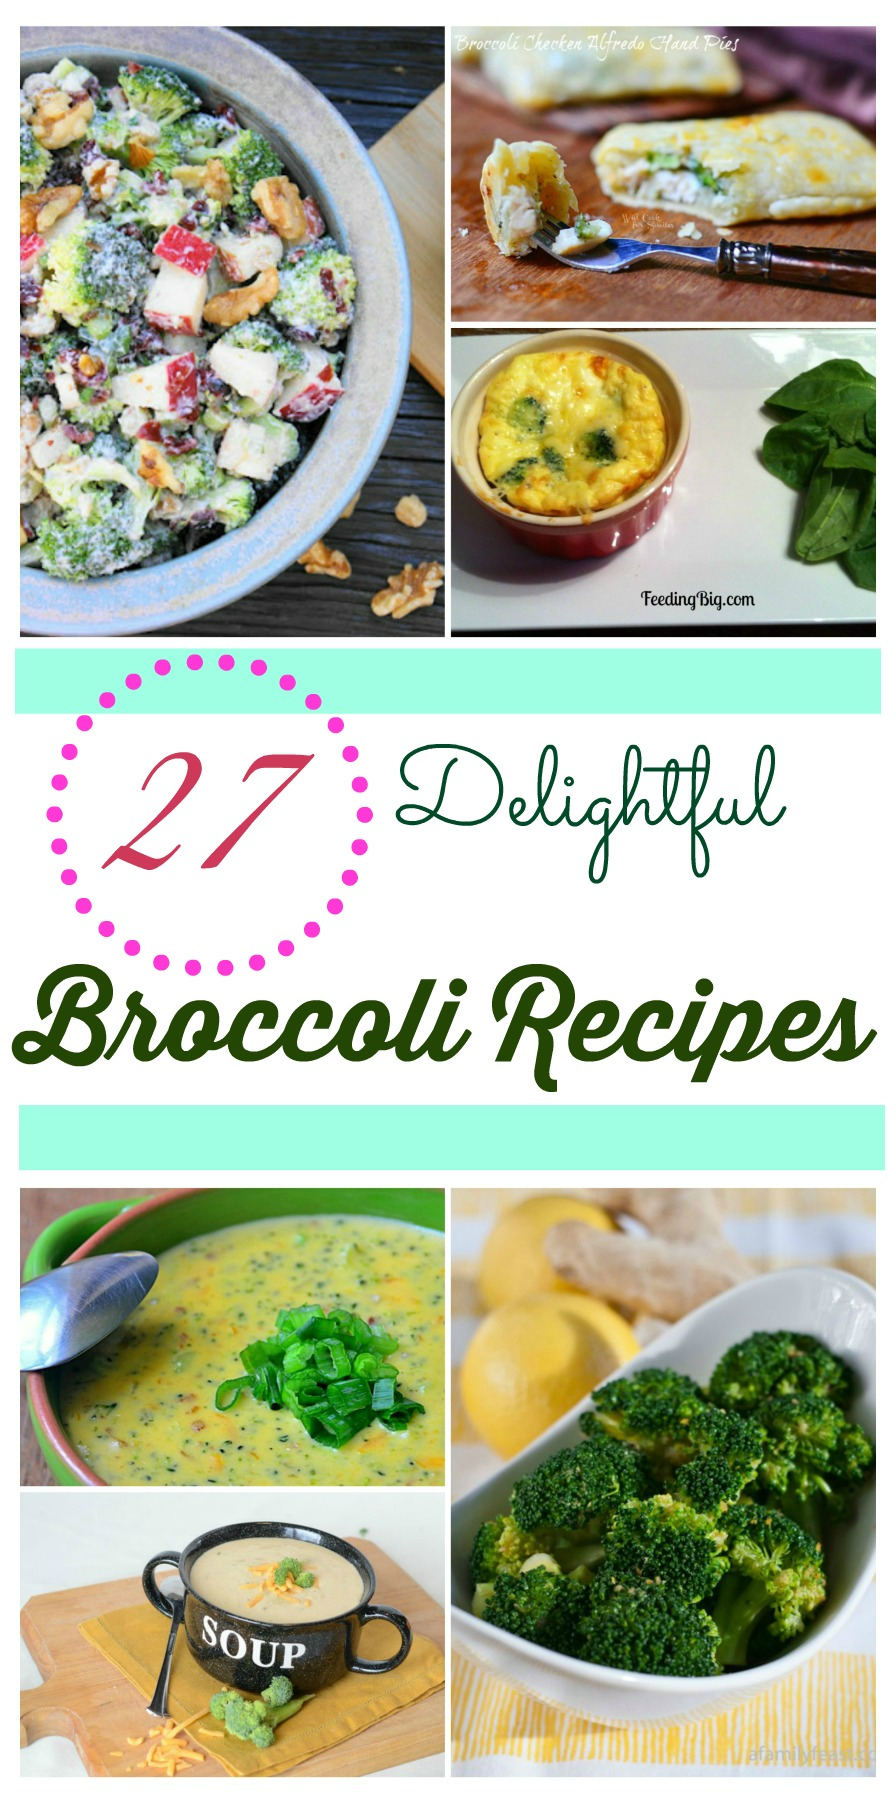 Looking for some new broccoli recipes? Check out our 26 Delightful Broccoli Recipes round up here!